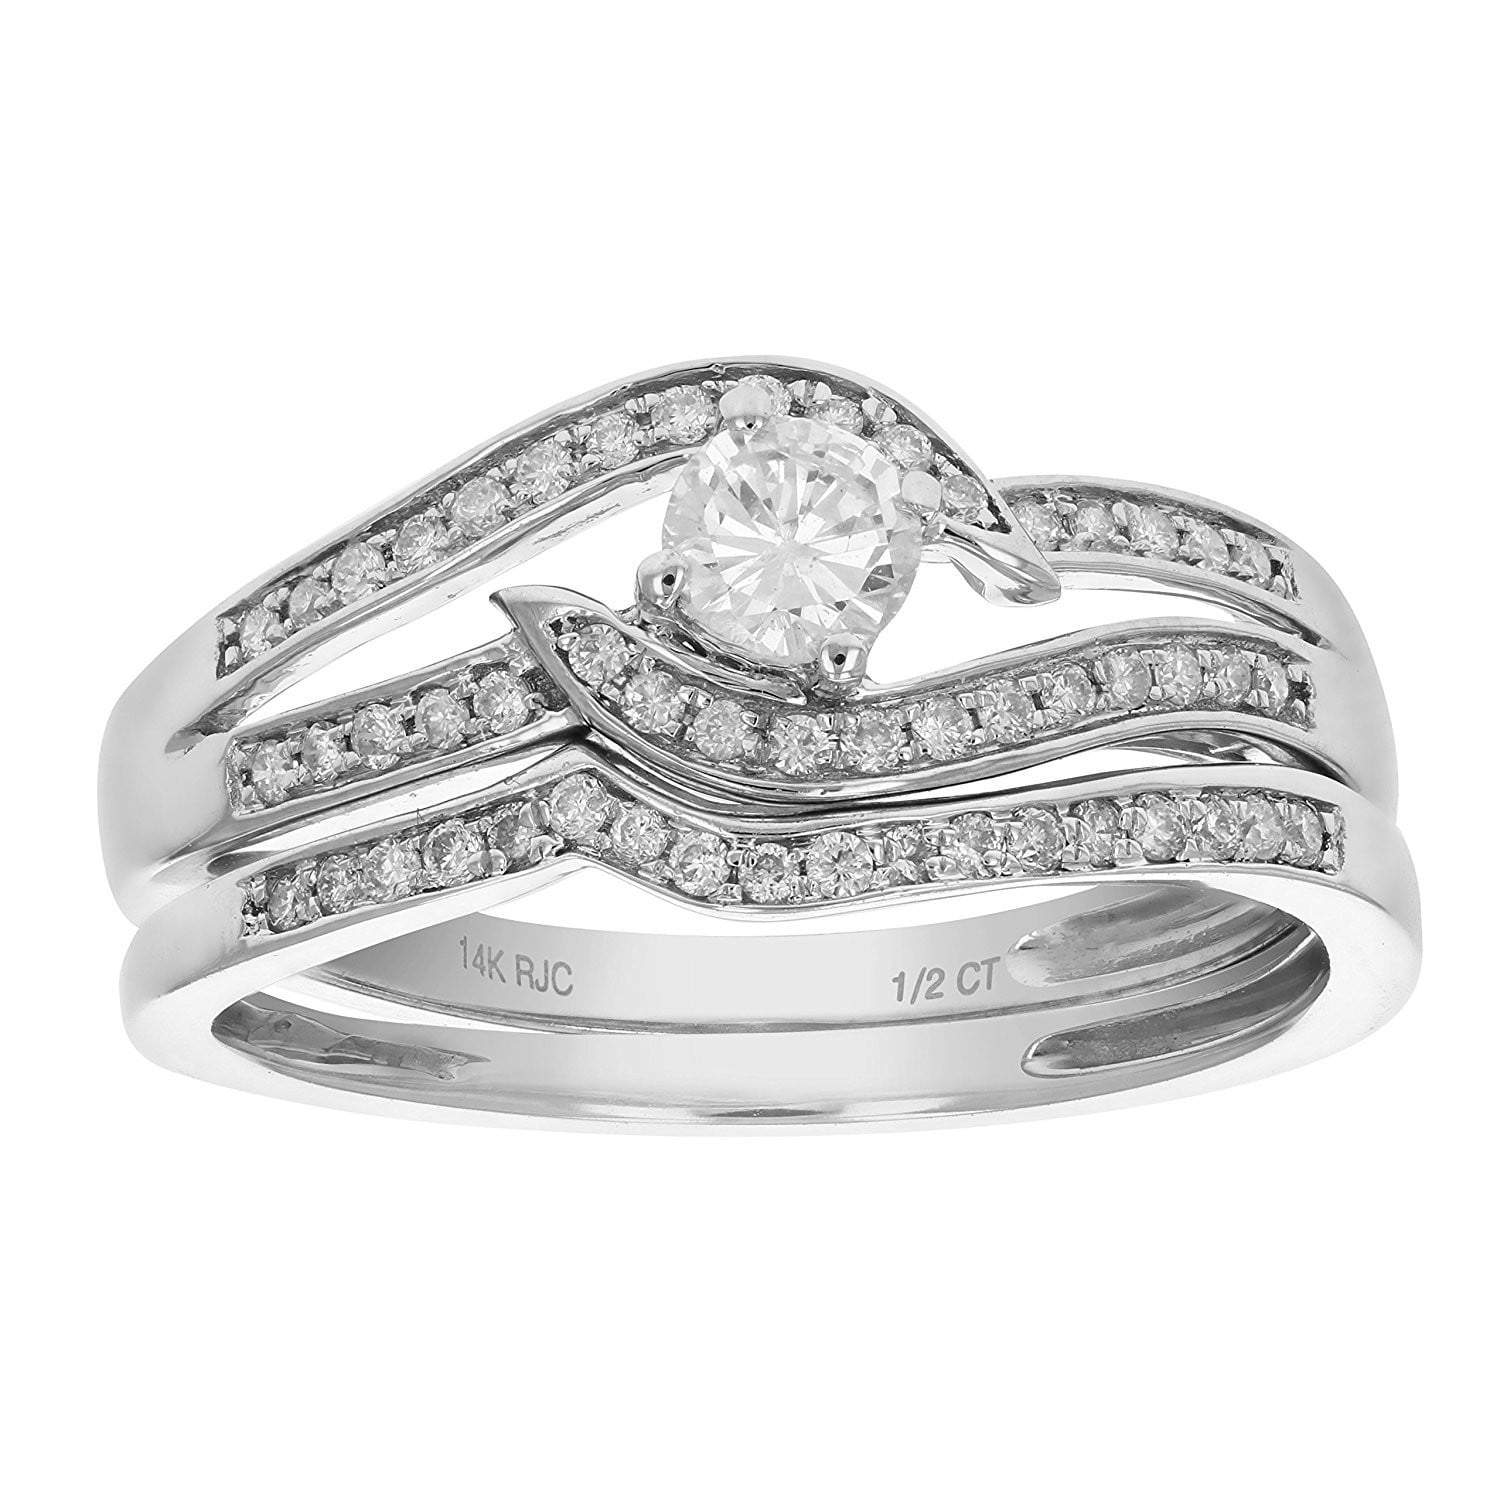 1 00 Carat Seven Stone Diamond Wedding Band in 14K White Gold AGS